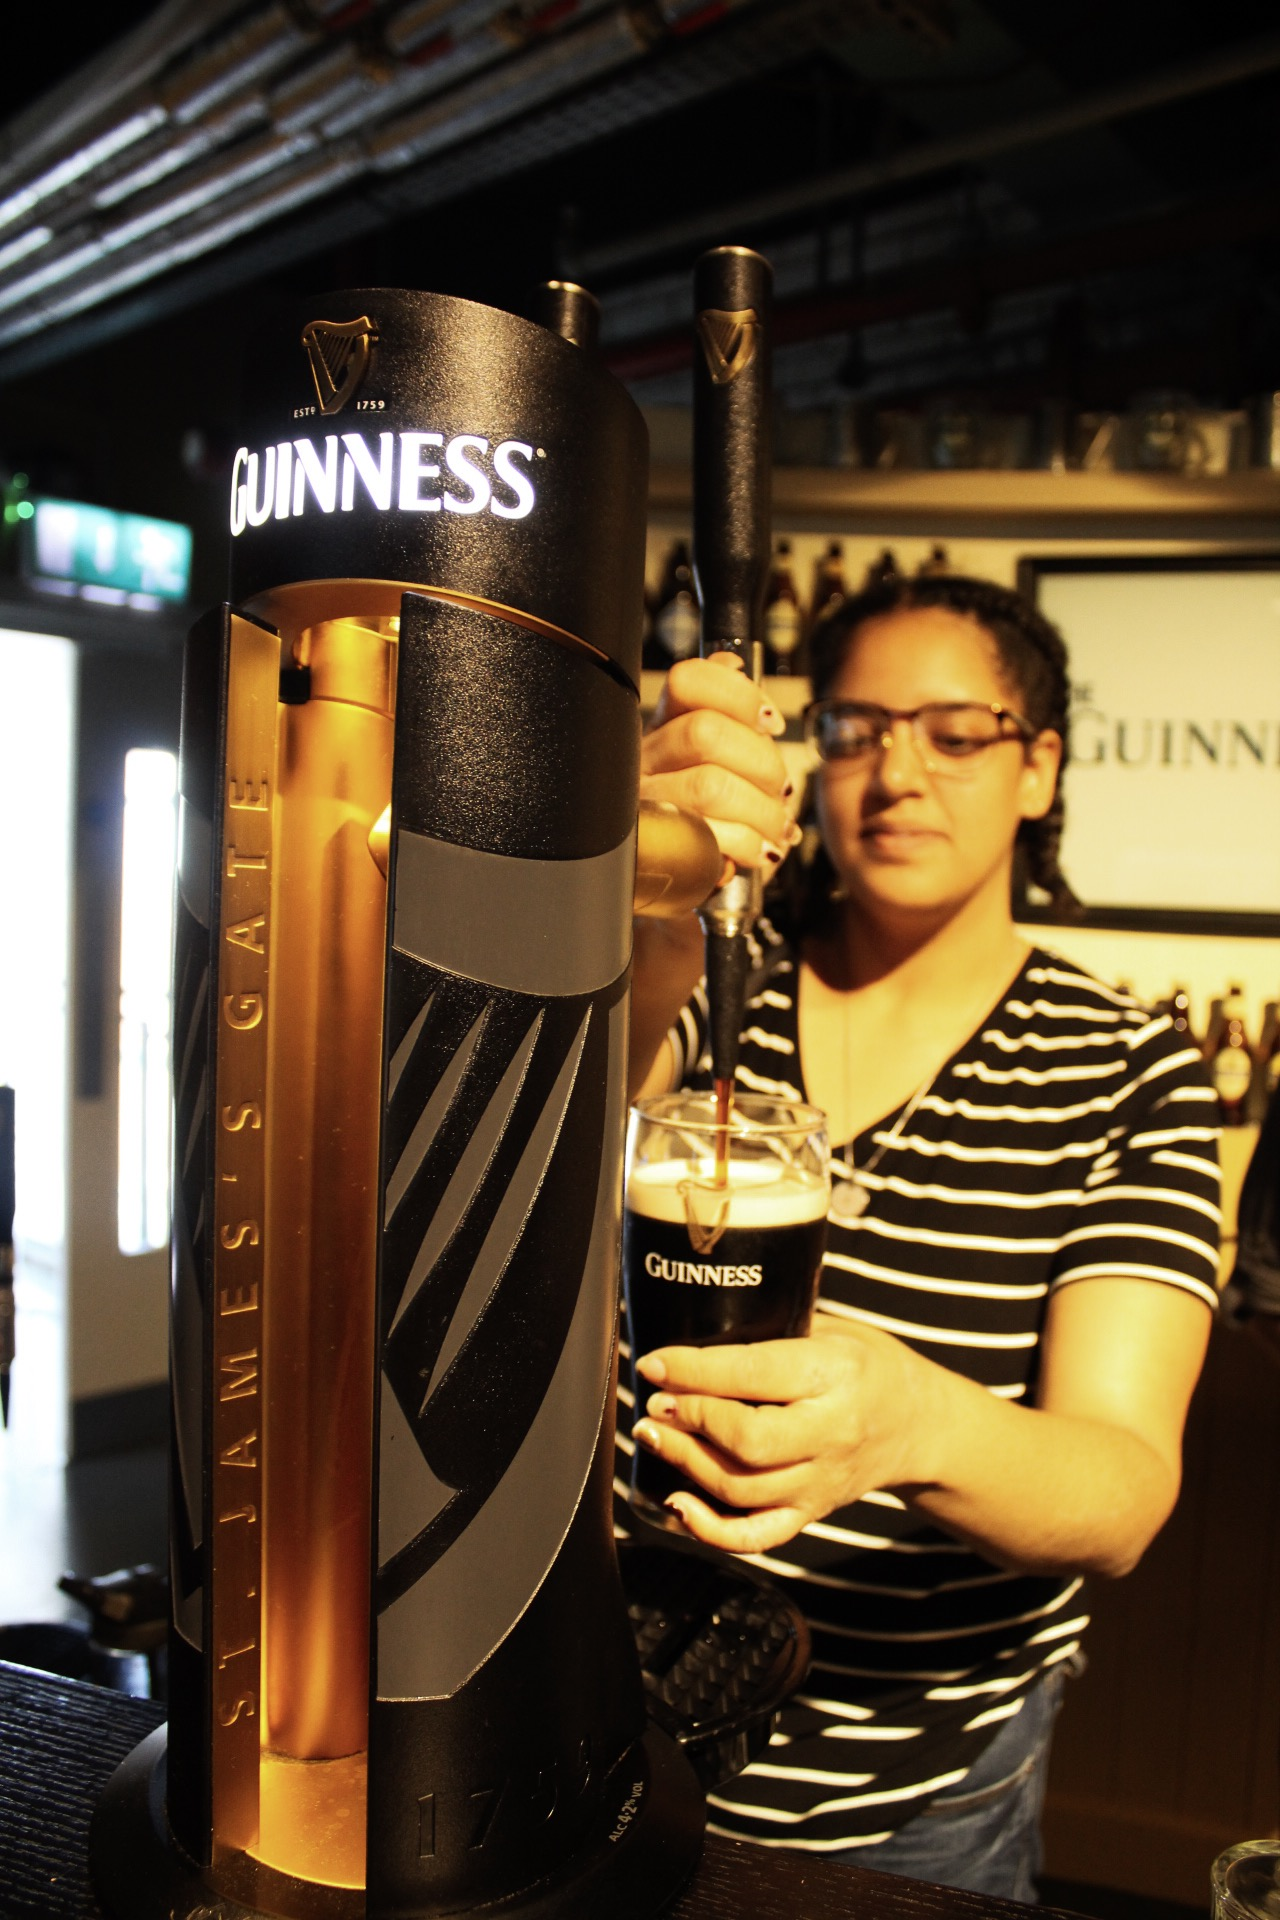 I learned how to pour the perfect glass of Guinness!